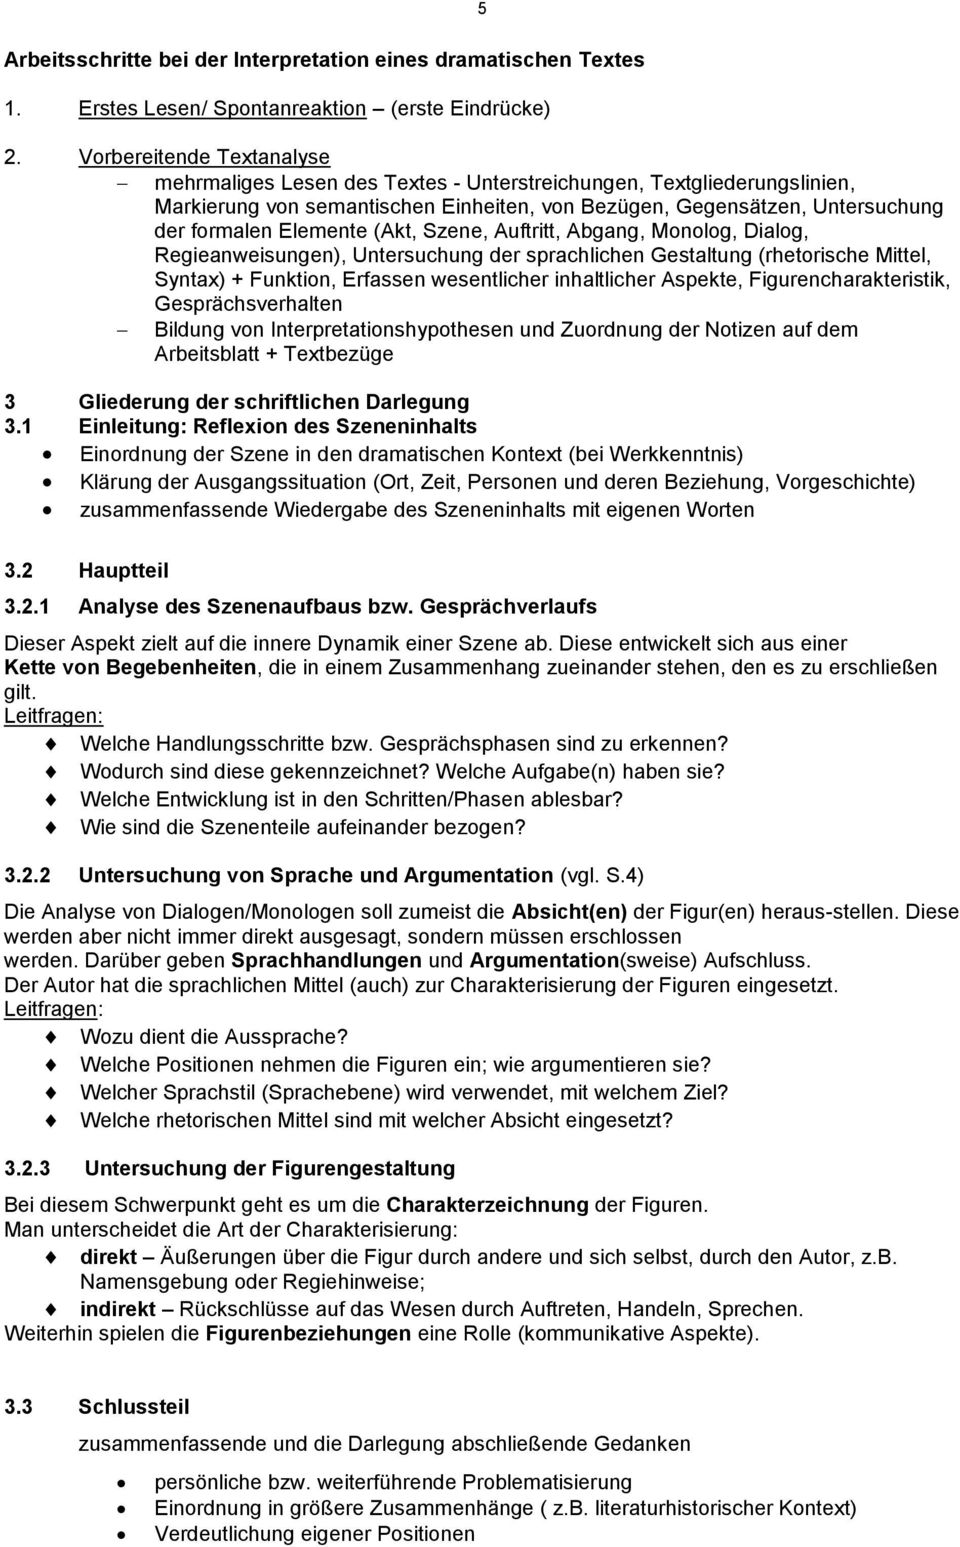 Interpretation dramatischer Texte. Dramentheorie: - PDF